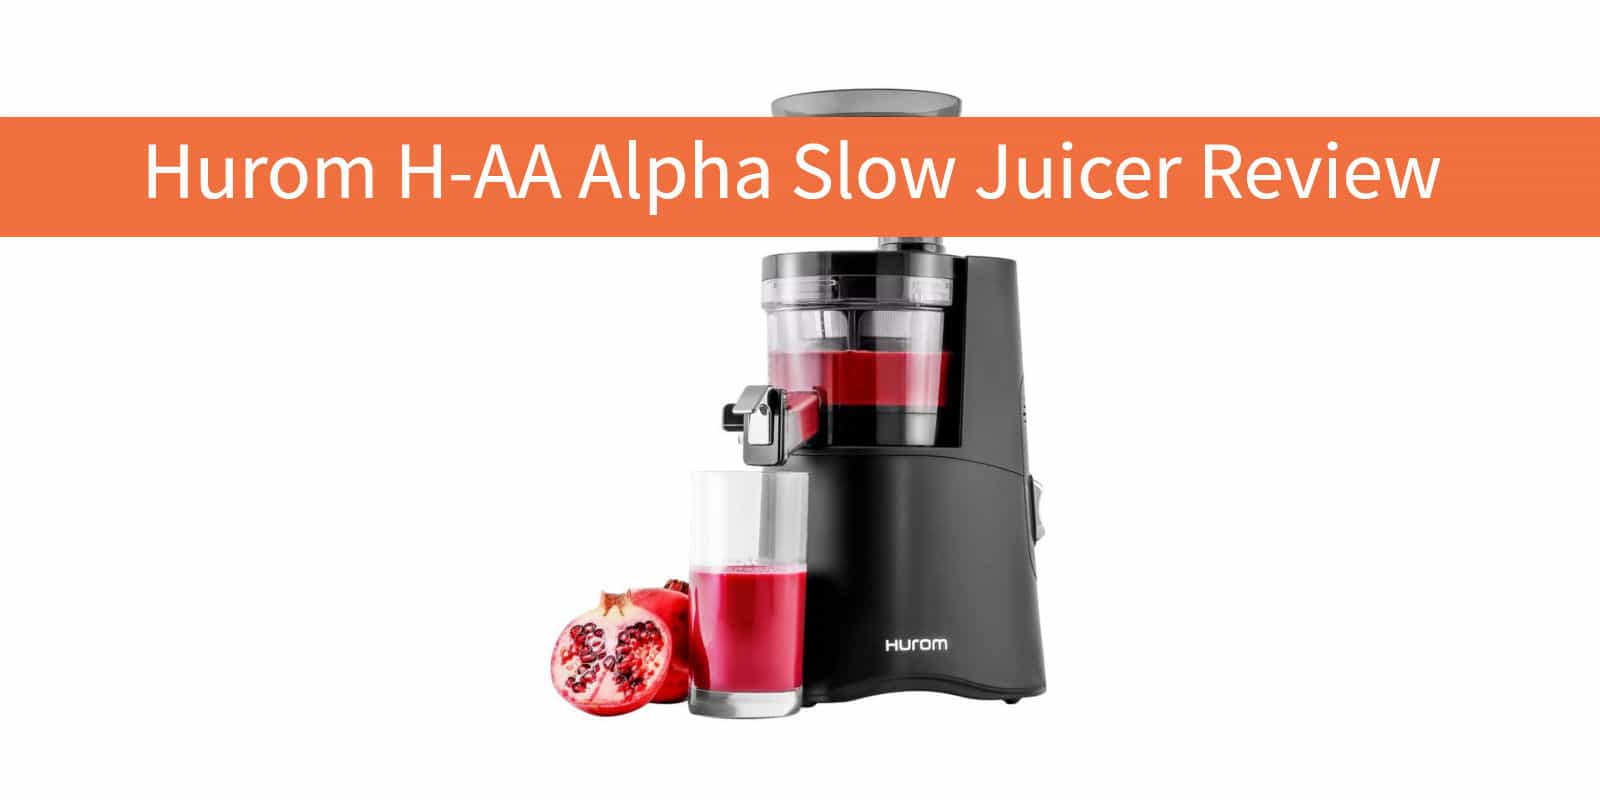 Hurom H-AA Alpha Slow Juicer Review (2018) vegByte